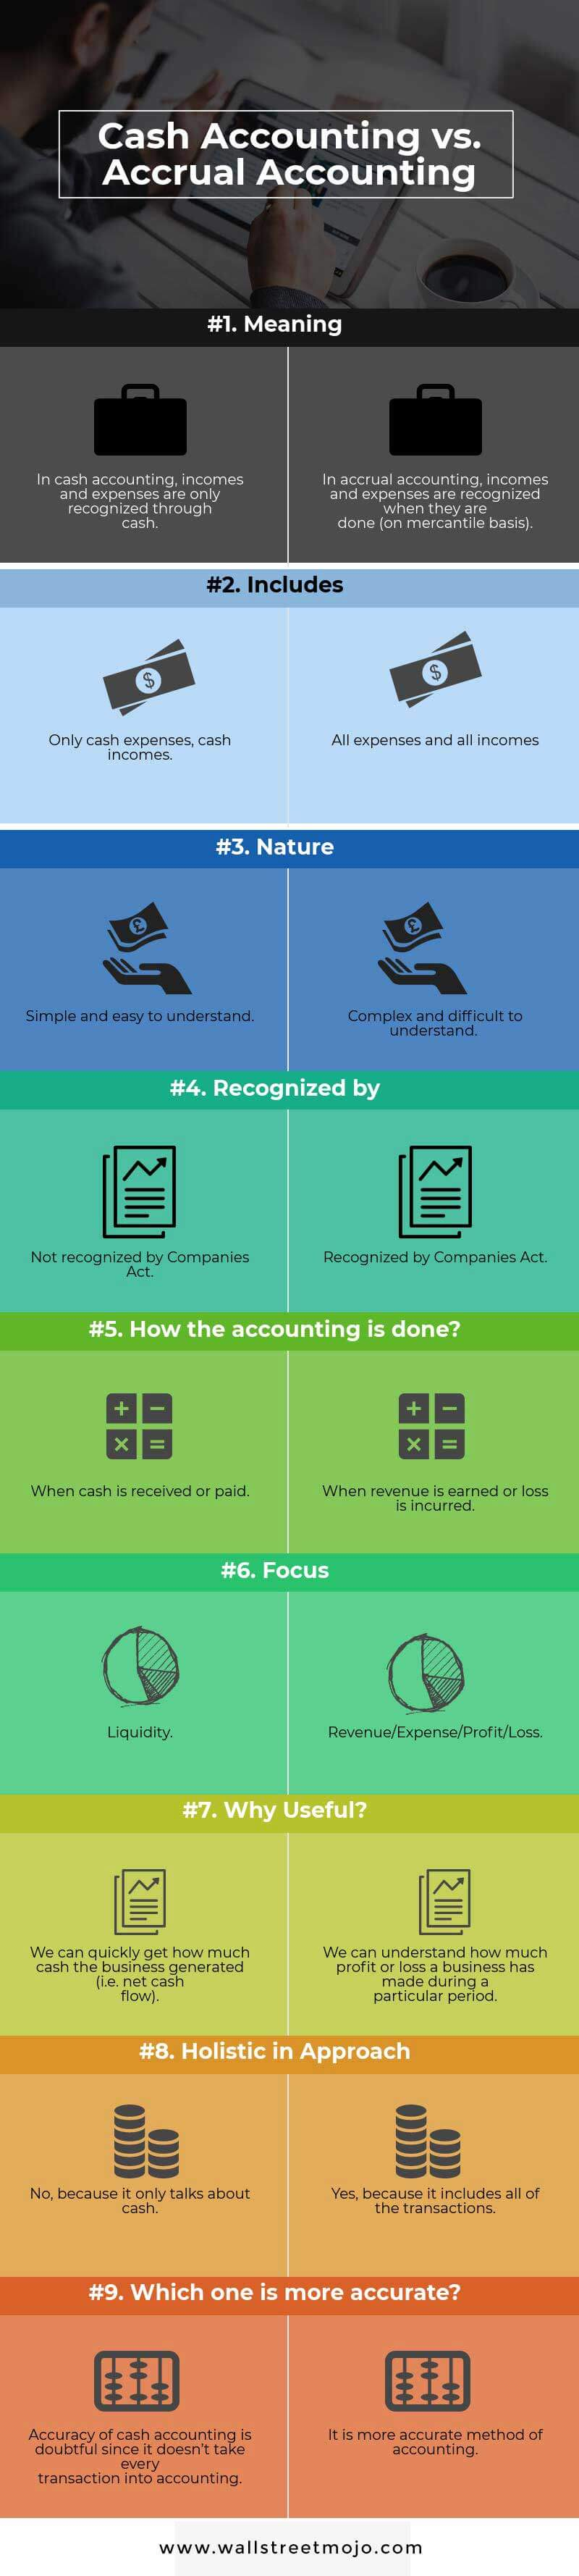 cash accounting vs accrual accounting | top 9 differences